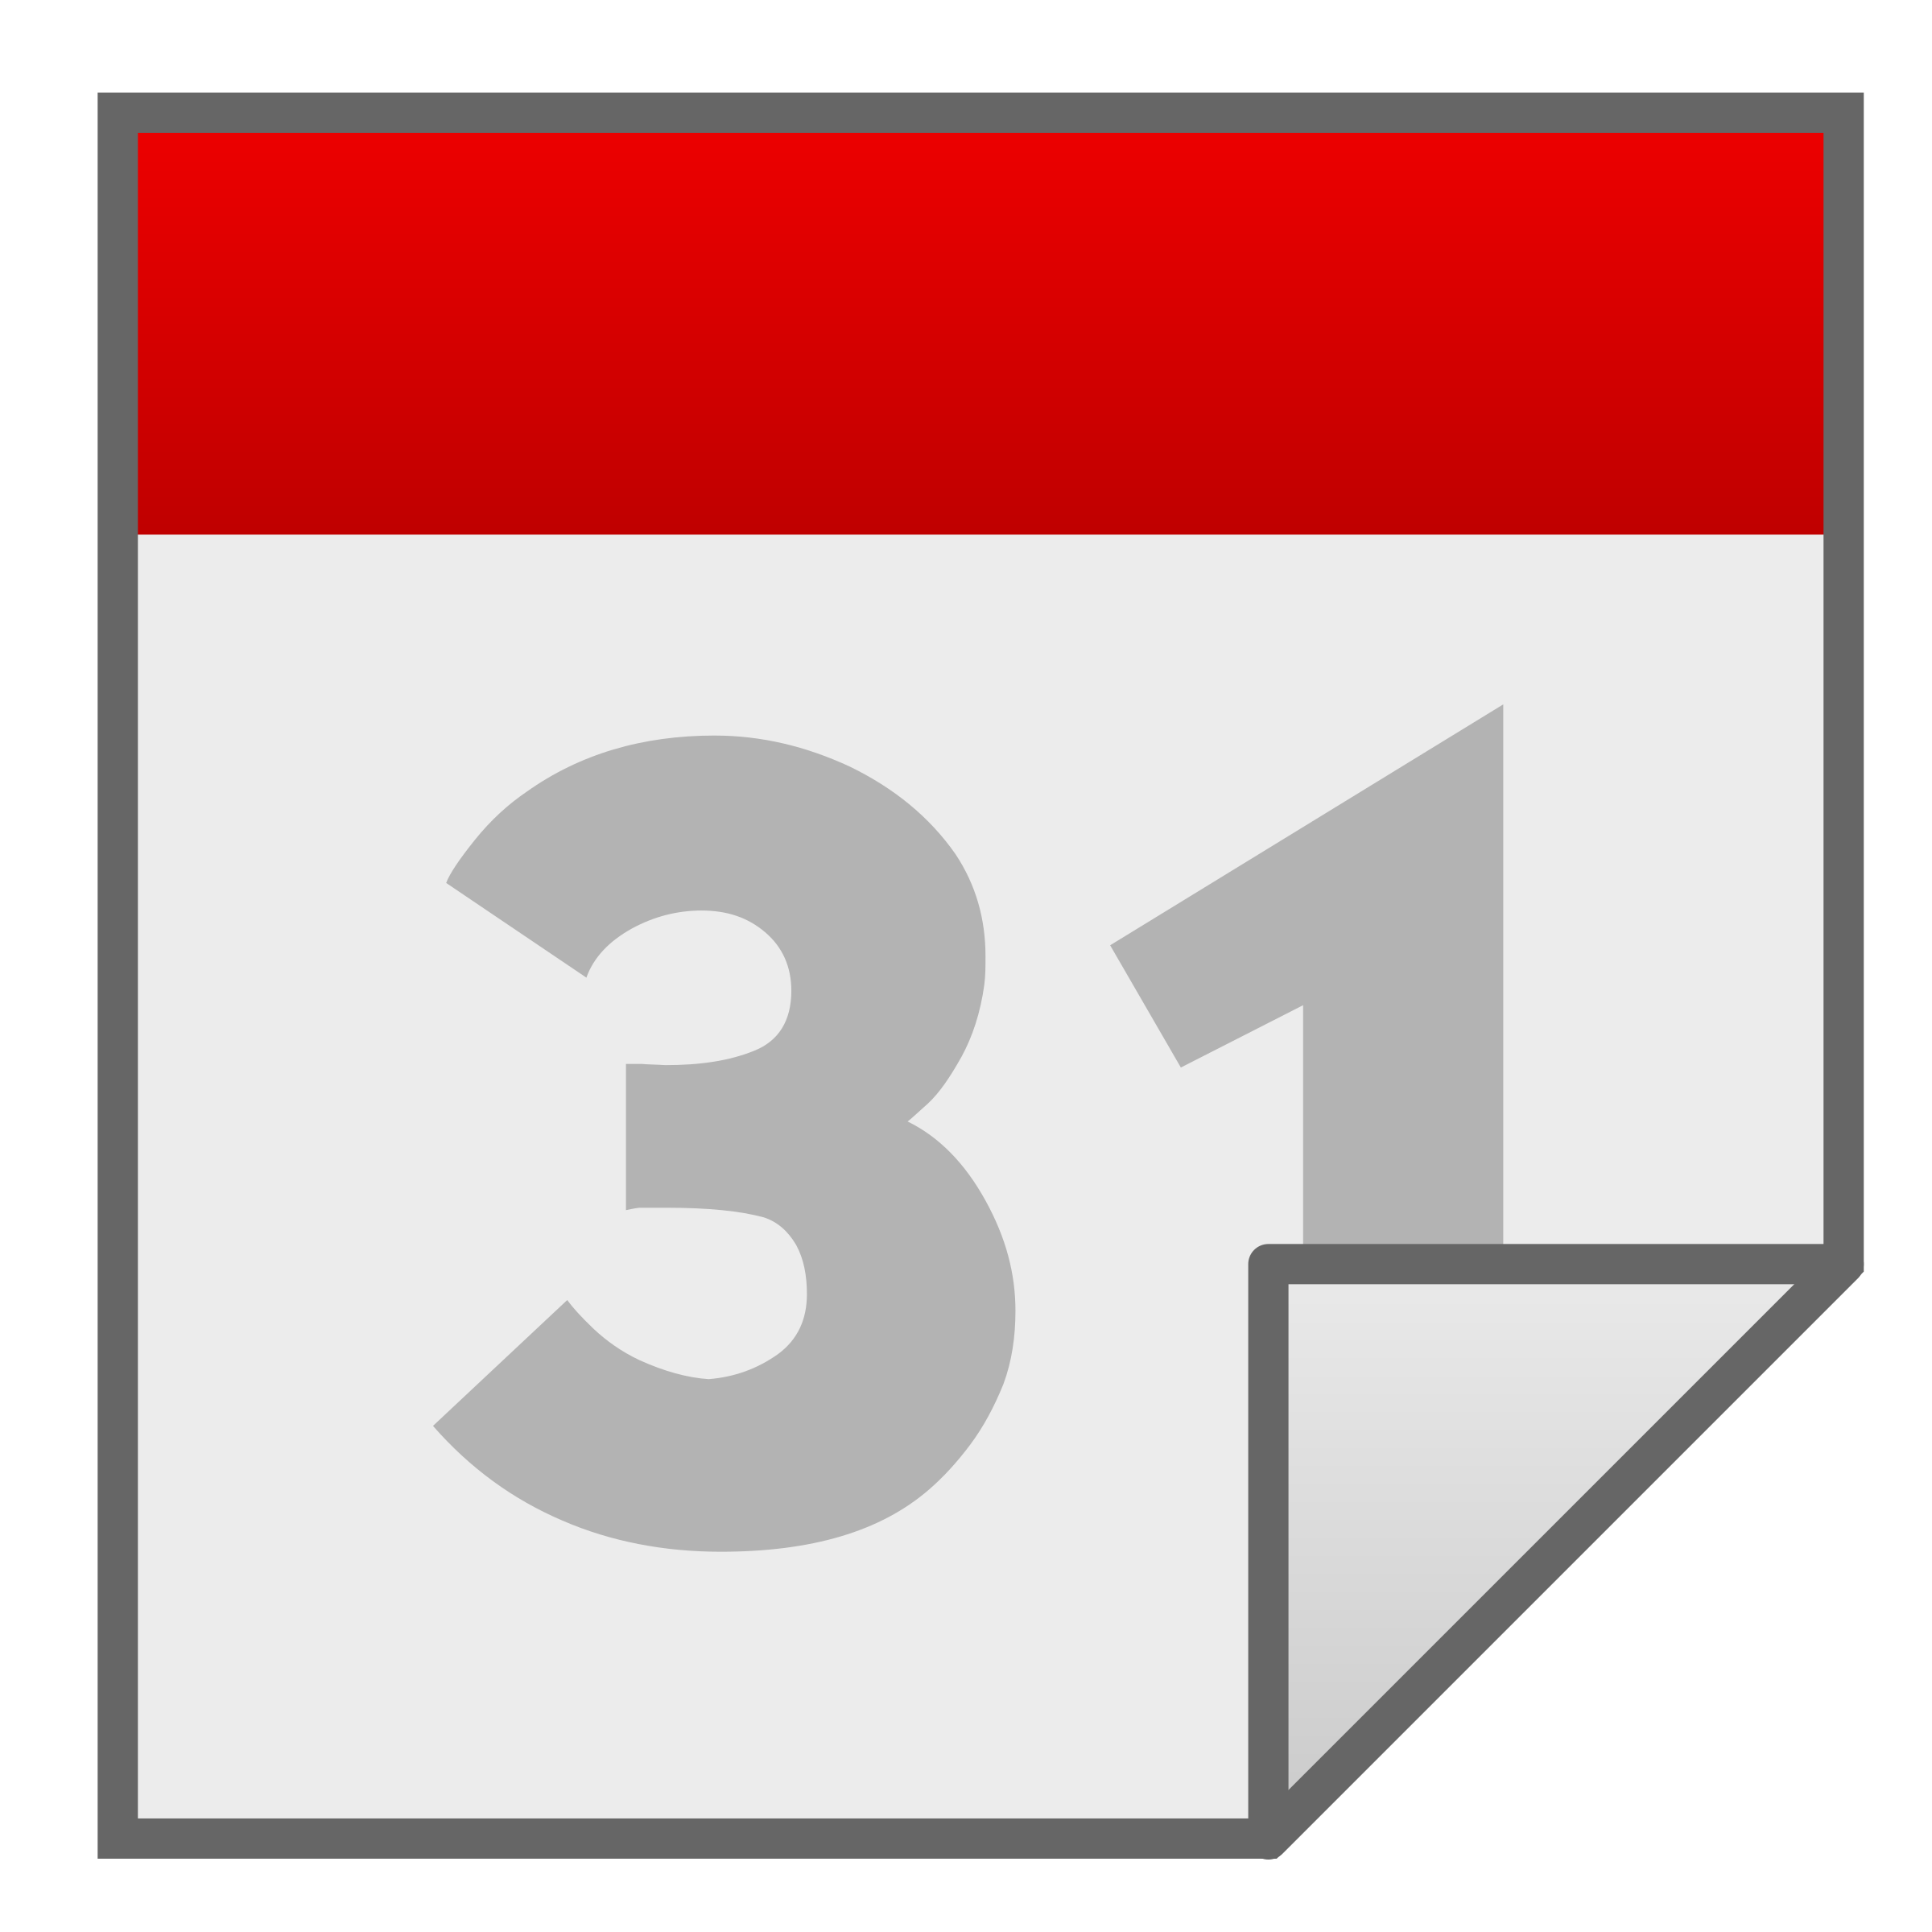 Calendar file icon by jhnri4